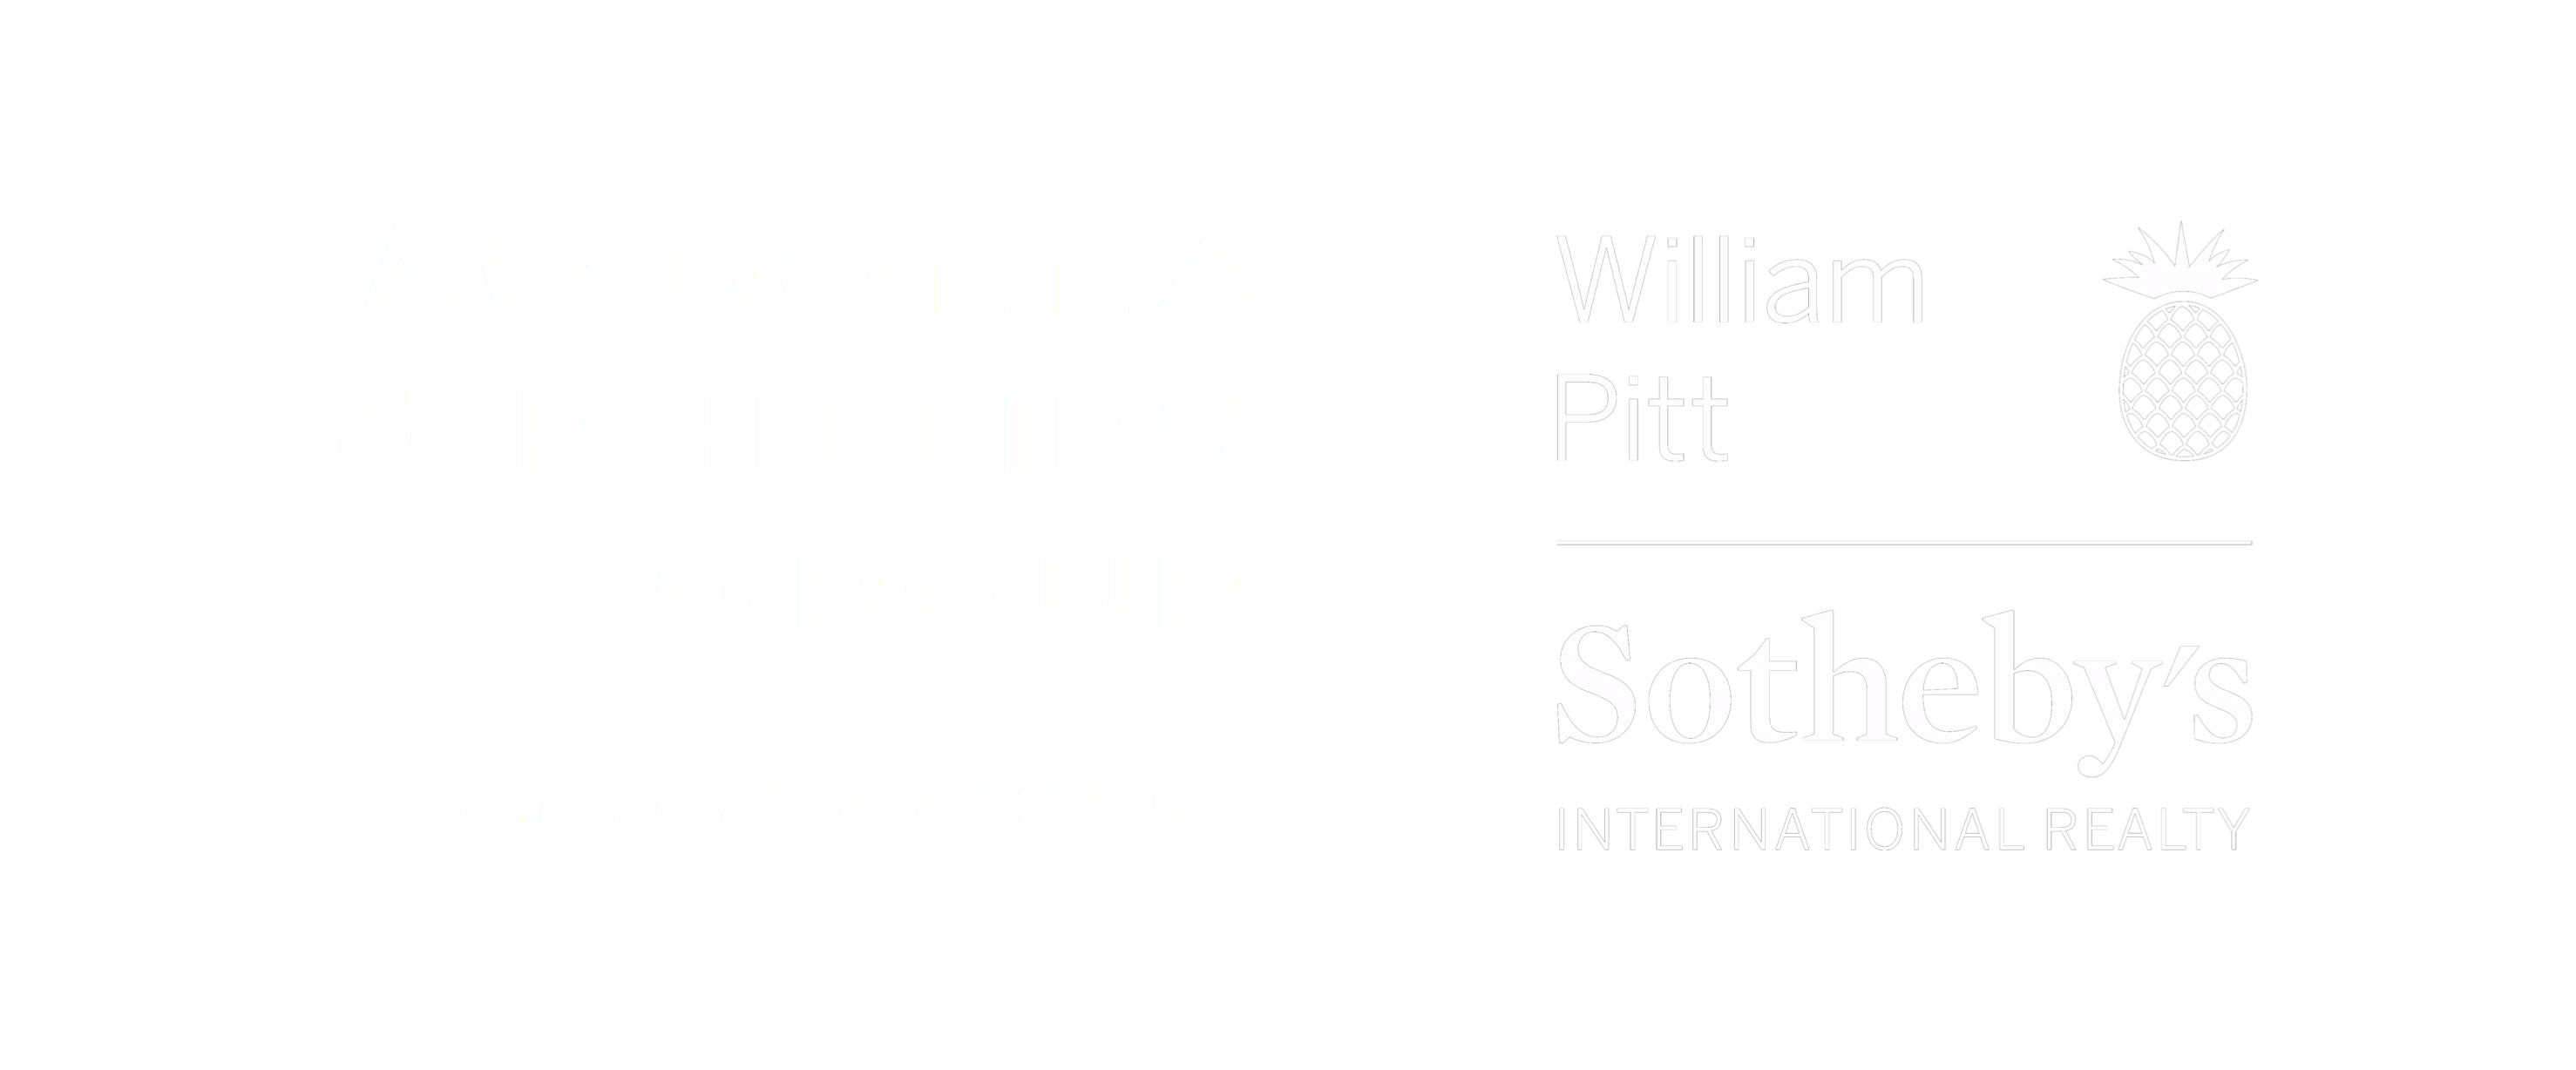 Madonna & Phillips Group at William Pitt Sotheby's International Realty